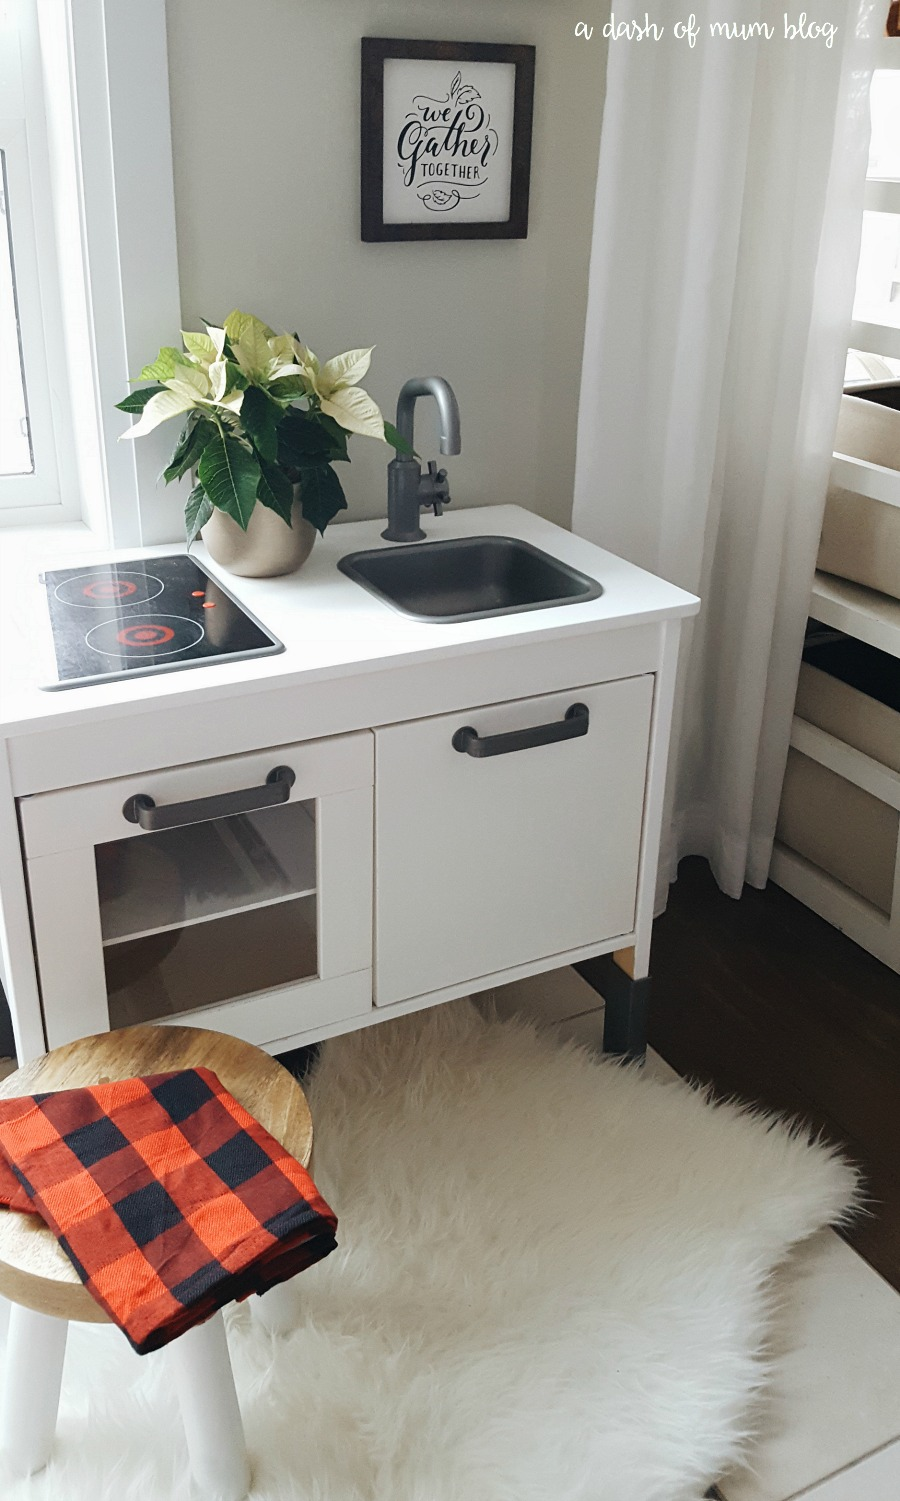 Makeover the Ikea Duktig play kitchen with this simple DIY by A Dash of Mum Blog